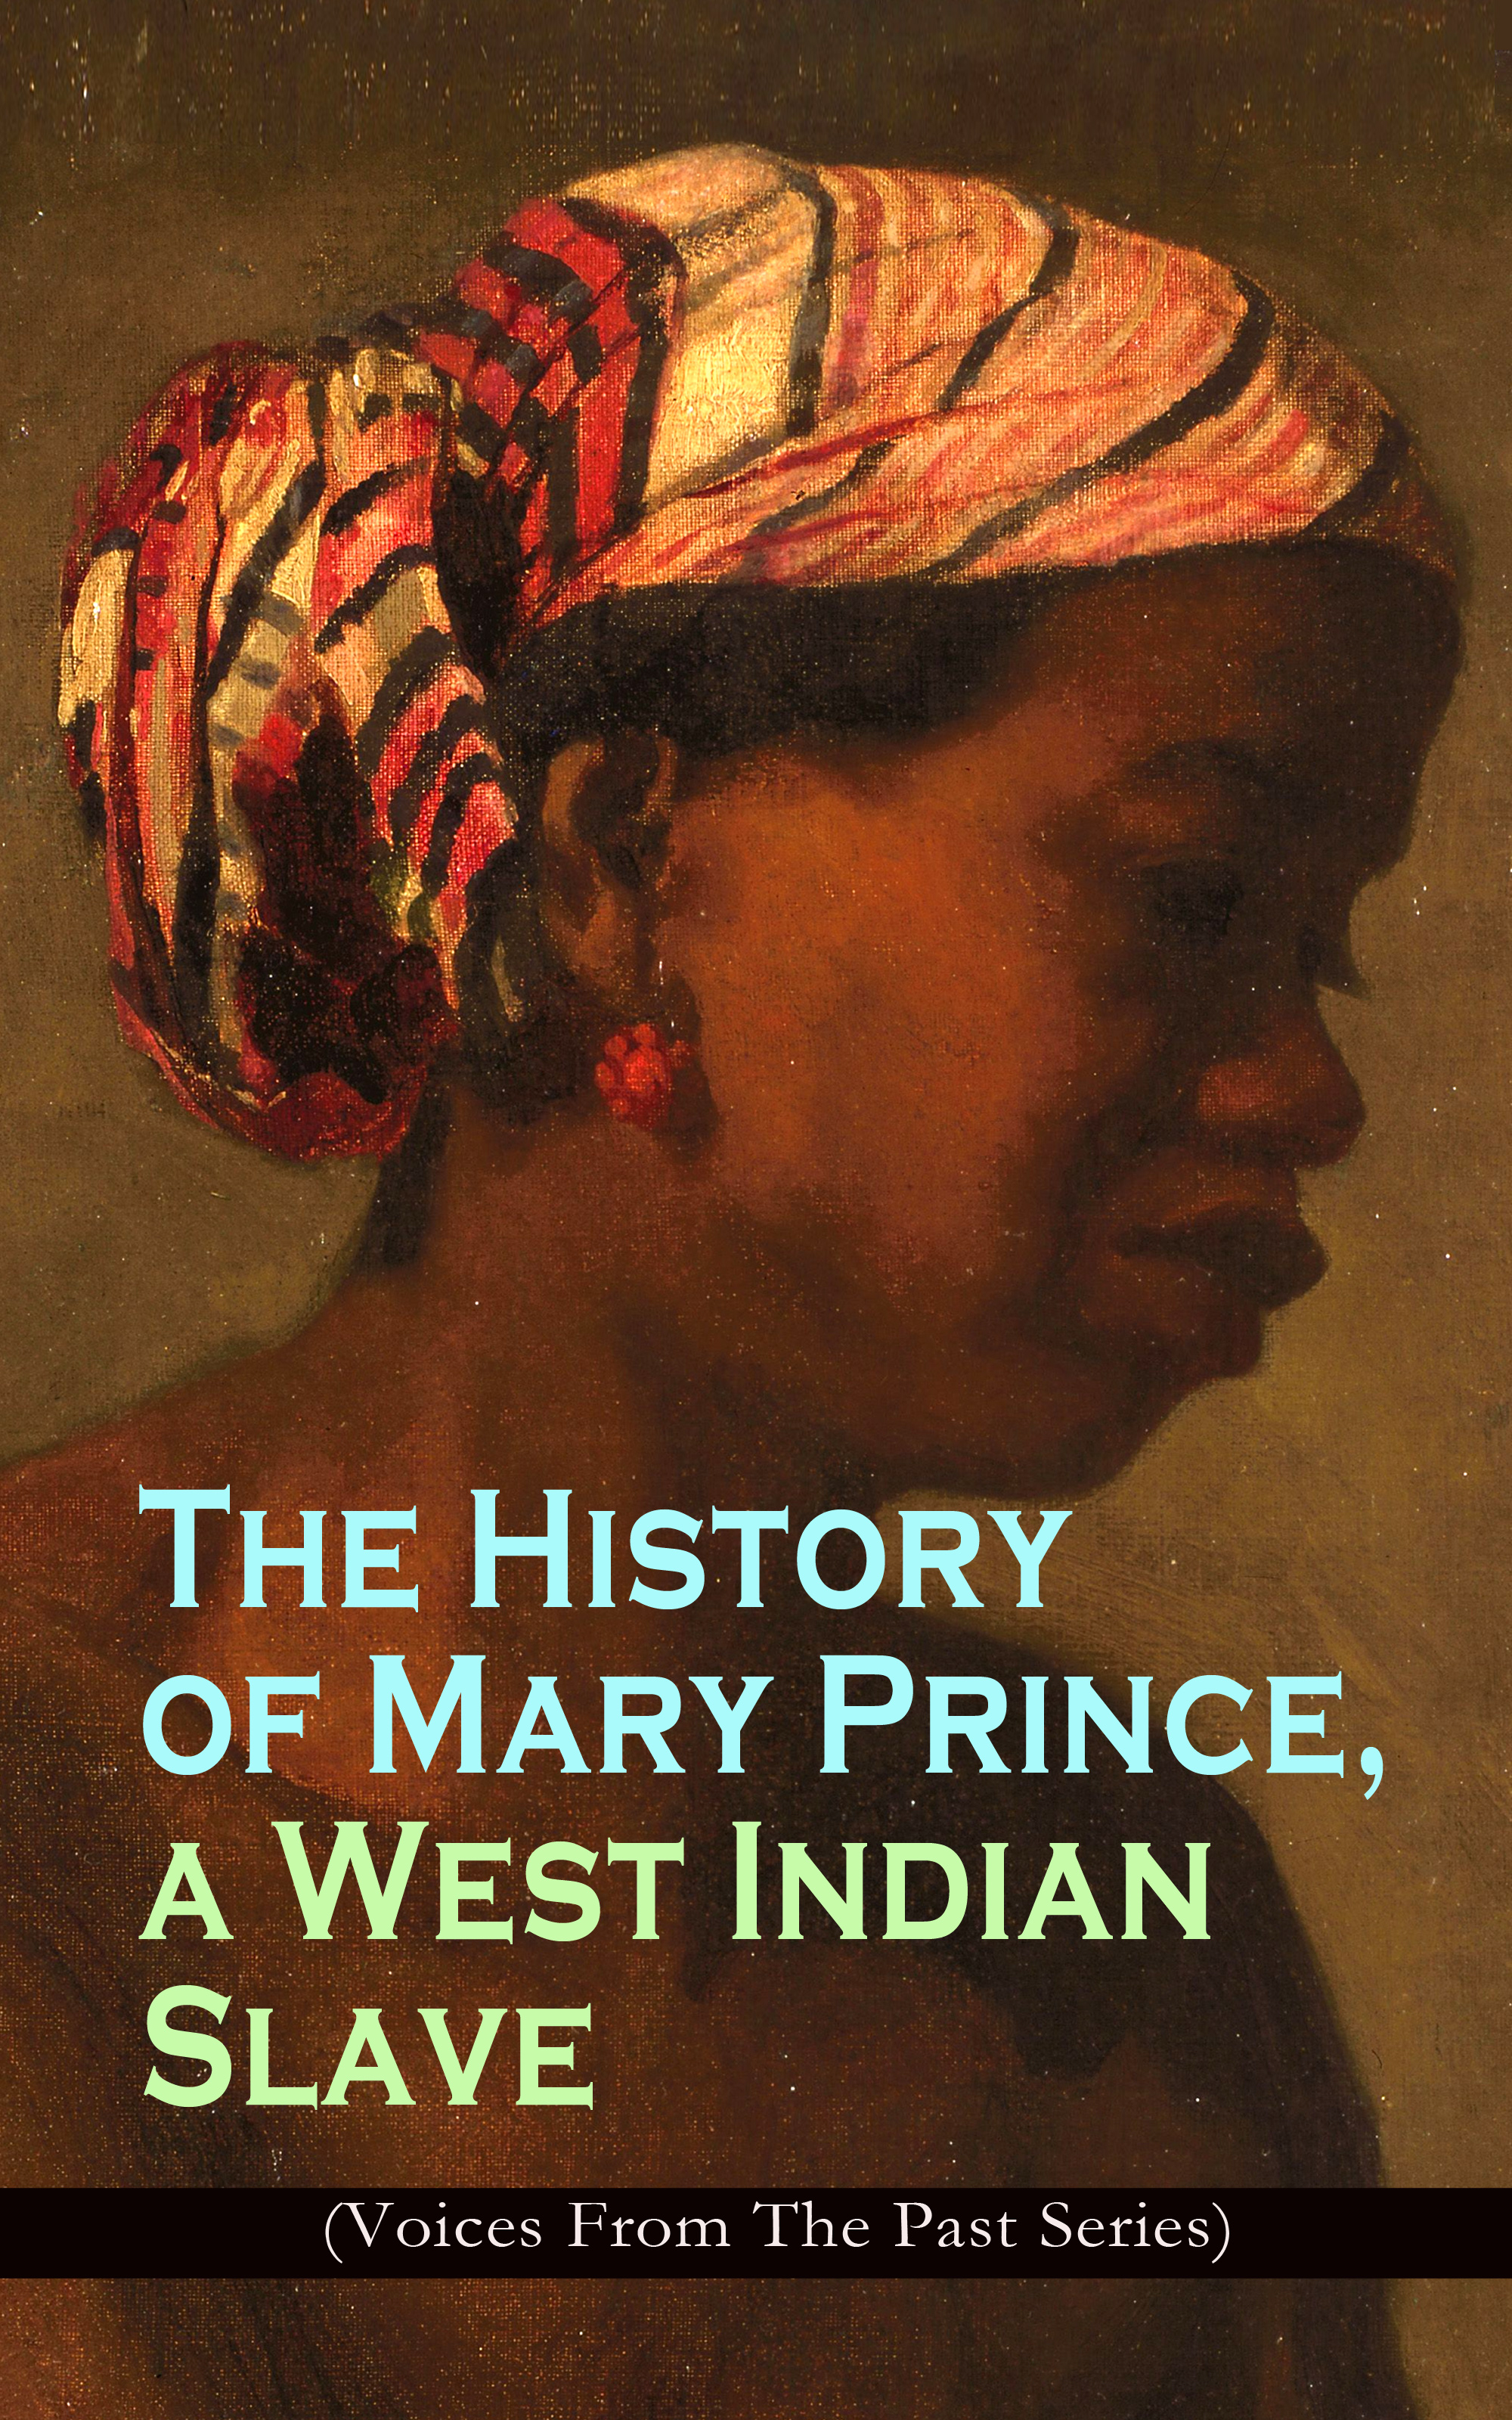 Mary Prince The History of Mary Prince, a West Indian Slave (Voices From The Past Series) linda clowers the voices of trees